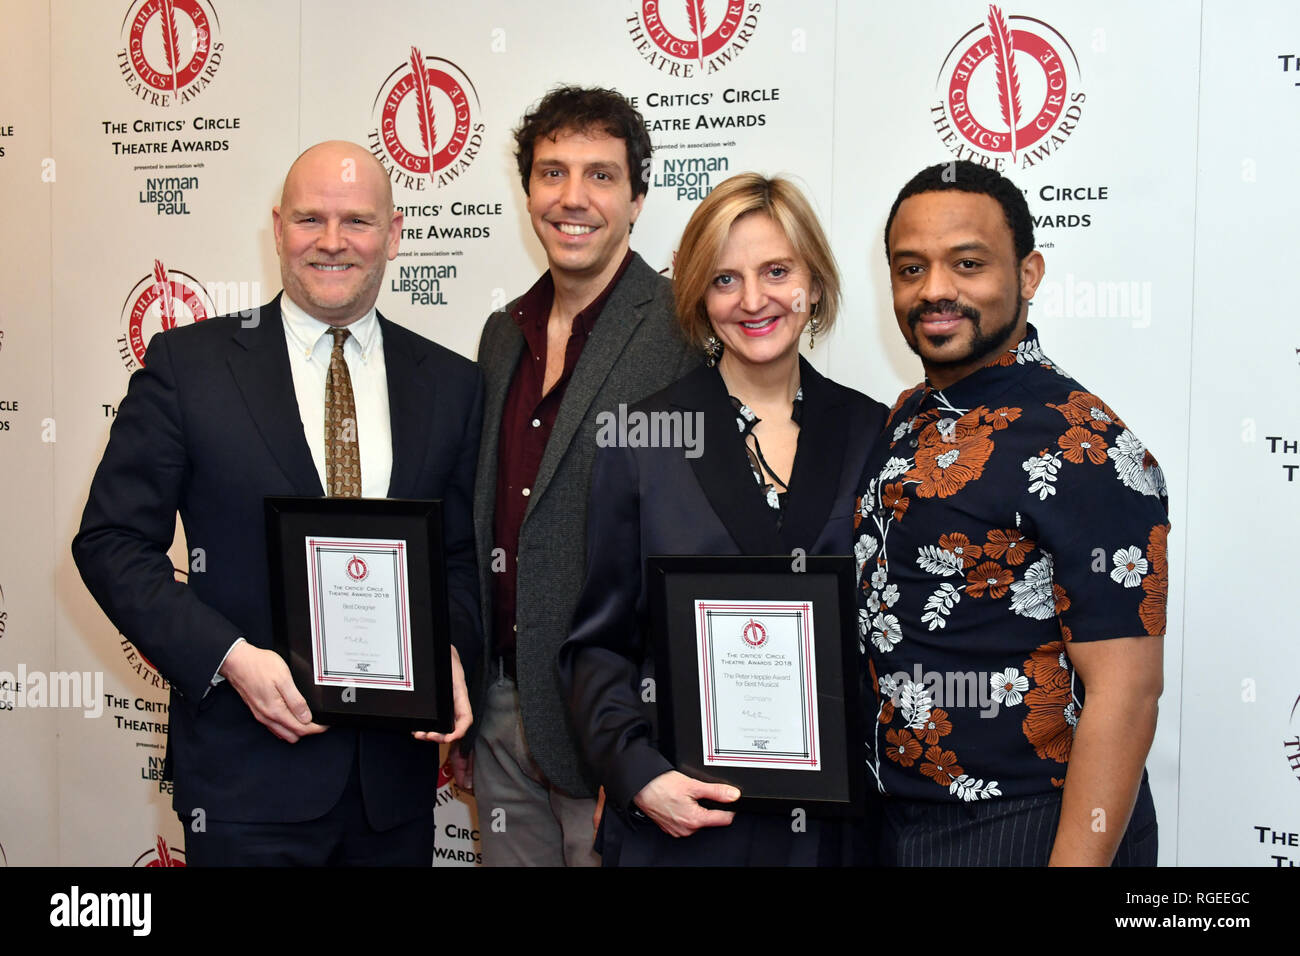 London, UK. 29th Jan 2019. Chris Harper, Alex Gaumond, Marianne Elliott, Ashley Campbell  at The Critics' Circle Theatre Awards annual ceremony which celebrates the achievements of 2018's theatre productions, at Prince of Wales Theatre Credit: Nils Jorgensen/Alamy Live News - Stock Image